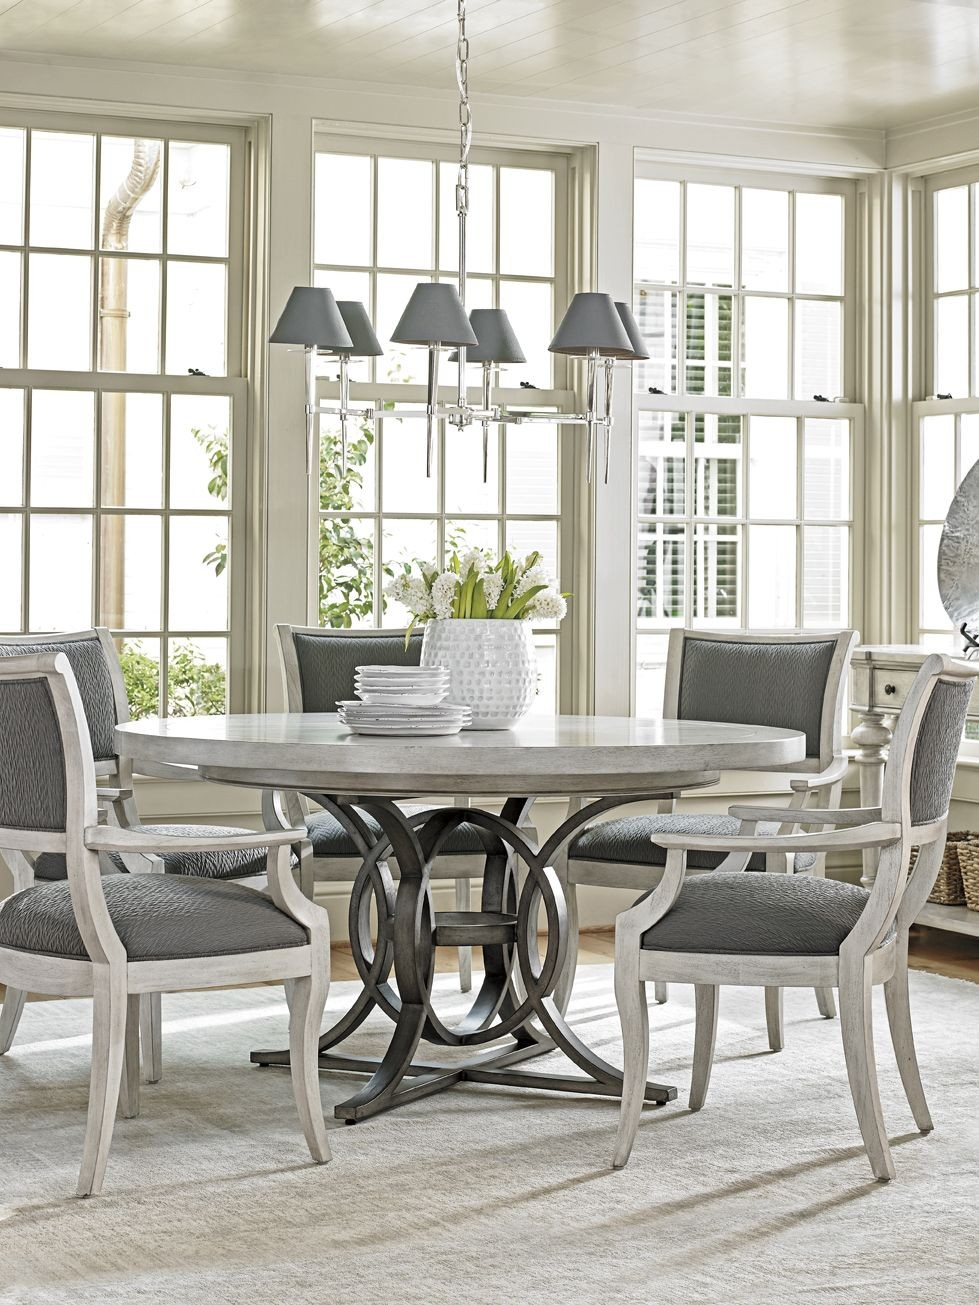 Oyster Bay Calerton Extendable Round Dining Table From